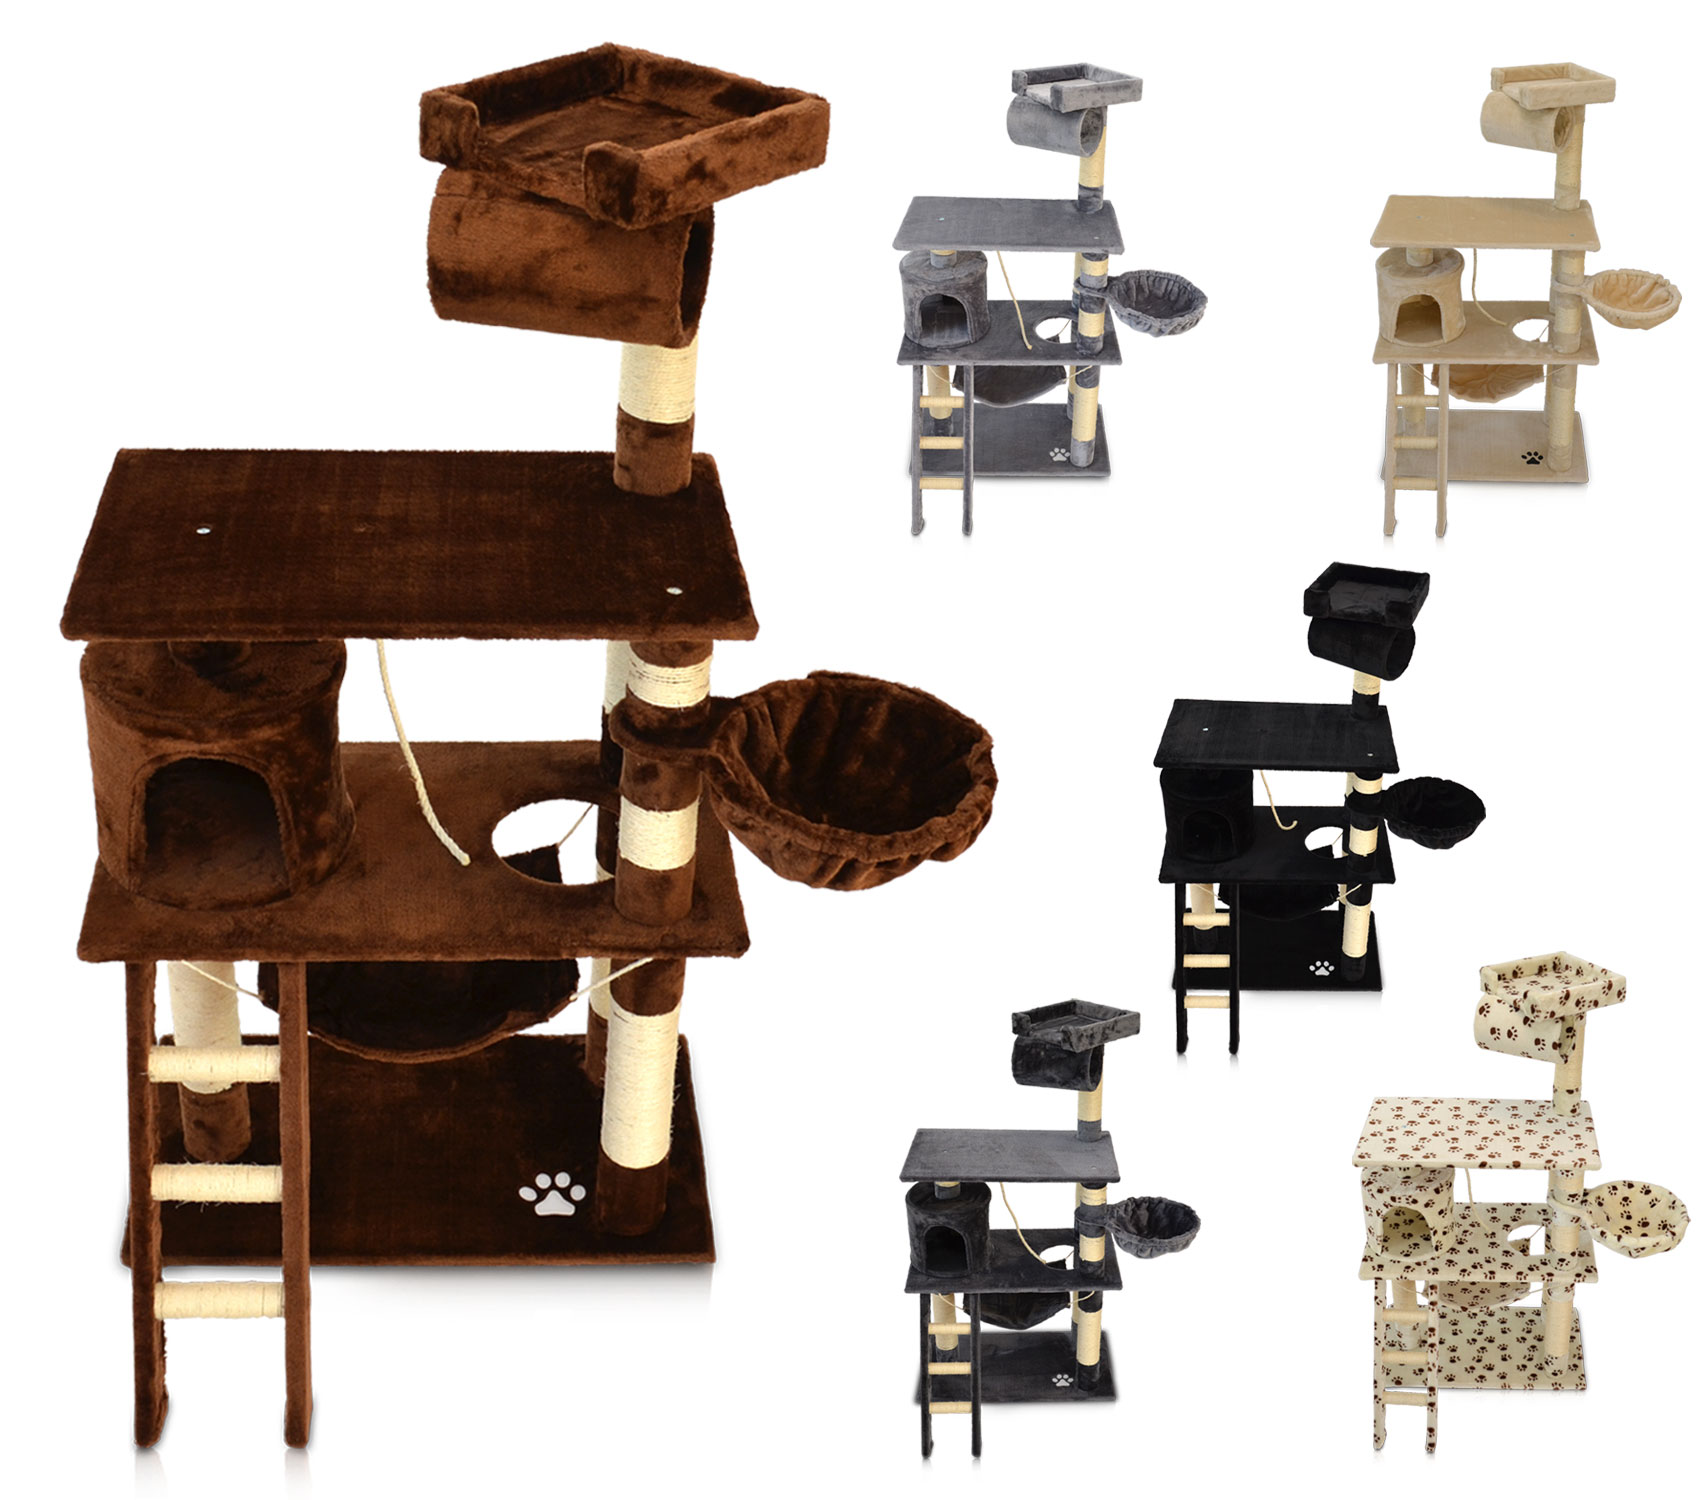 kratzbaum katzenkratzbaum kletterbaum katzenbaum katzen spielbaum sisal 6 farben ebay. Black Bedroom Furniture Sets. Home Design Ideas